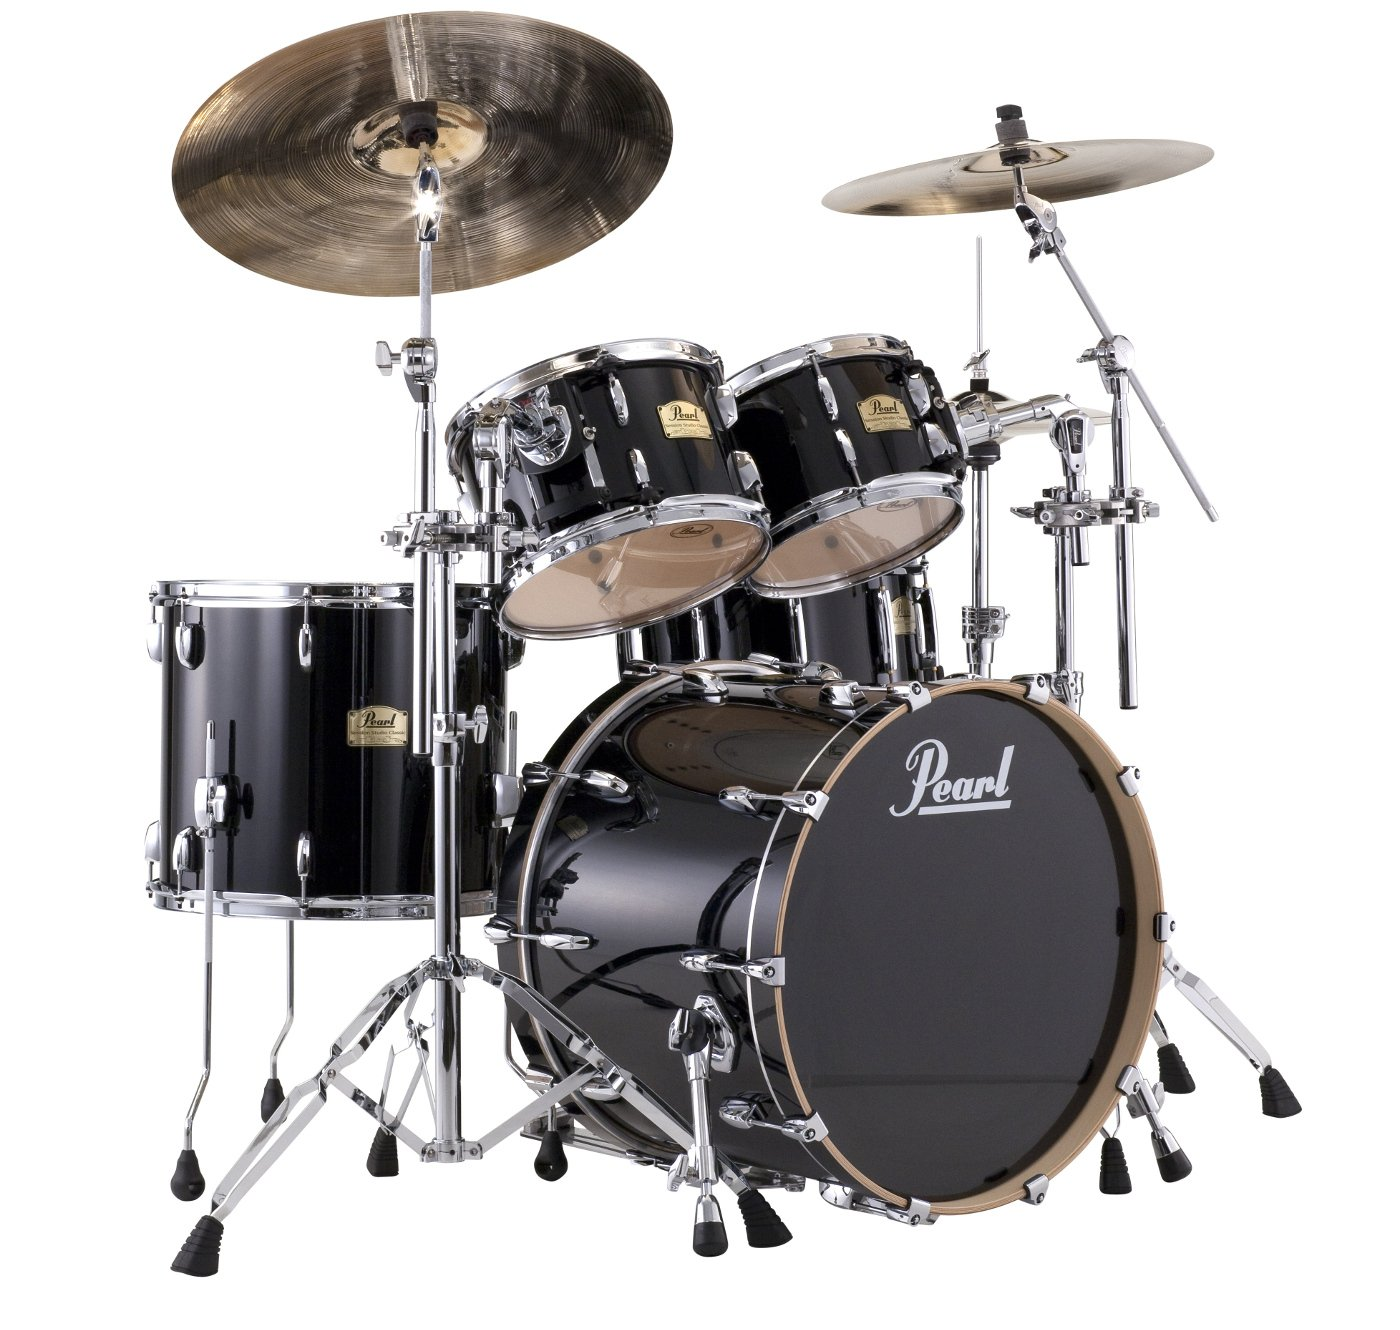 Pearl Drums SSC924XUP/C/103 4-Piece Session Studio Classic Shell Pack, Piano Black Finish SSC924XUP/C/103